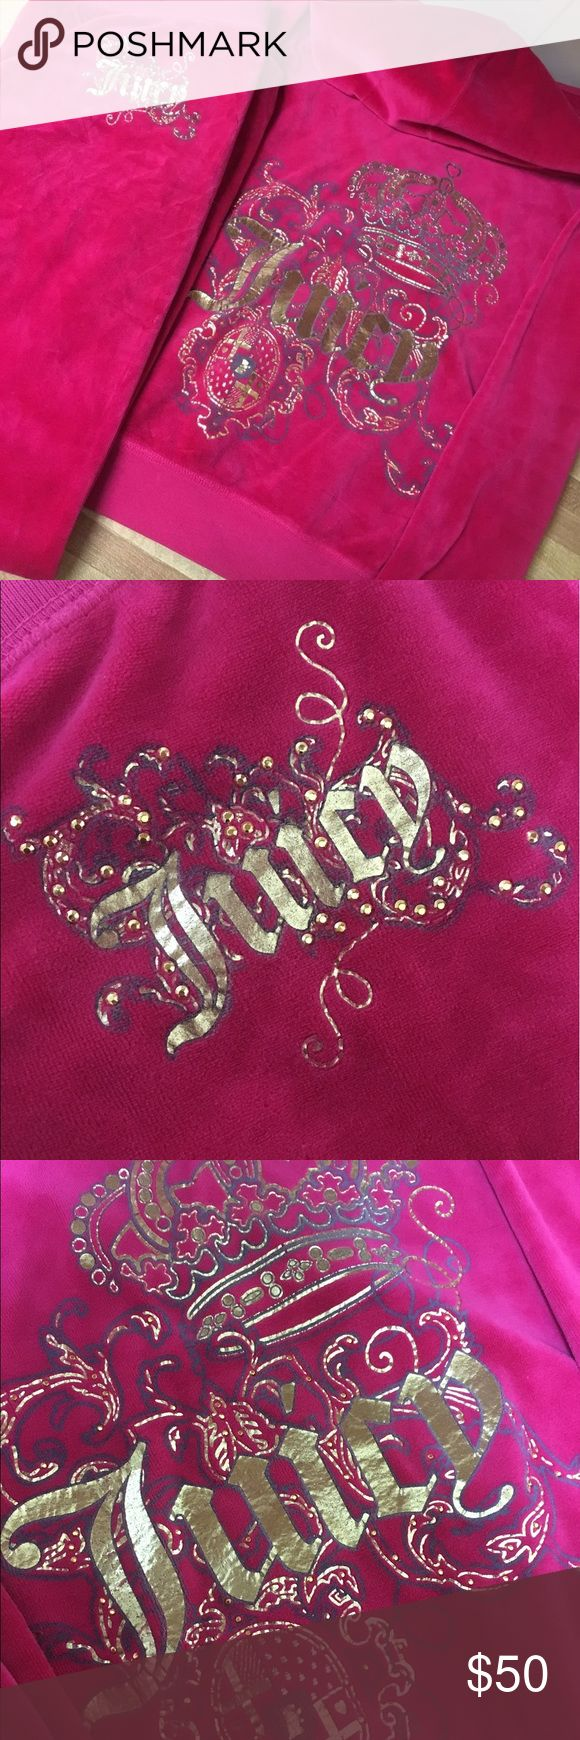 JUICY COUTURE SWEATSUIT PINK VELOUR GIRLS SIZE 14 AUTHENTIC JUICY COUTURE HOT PINK EMBELLISHED SWEATSUIT!! INCLUDES PANTS AND HOODIE BOTH WITH EMBELISSHMENT IN GREAT CONDITION!!GIRLS SIZE 14 !!! CAN FIT A WOMENS XS !! VERY DETAILED !!  COMES FROM SMOKE FREE & PET FREE HOME.PLEASE FEEL FREE TO SEND BEST OFFERS IF INTERESTED. PRICES ARE ALWAYS NEGOTIABLE !! Juicy Couture Other